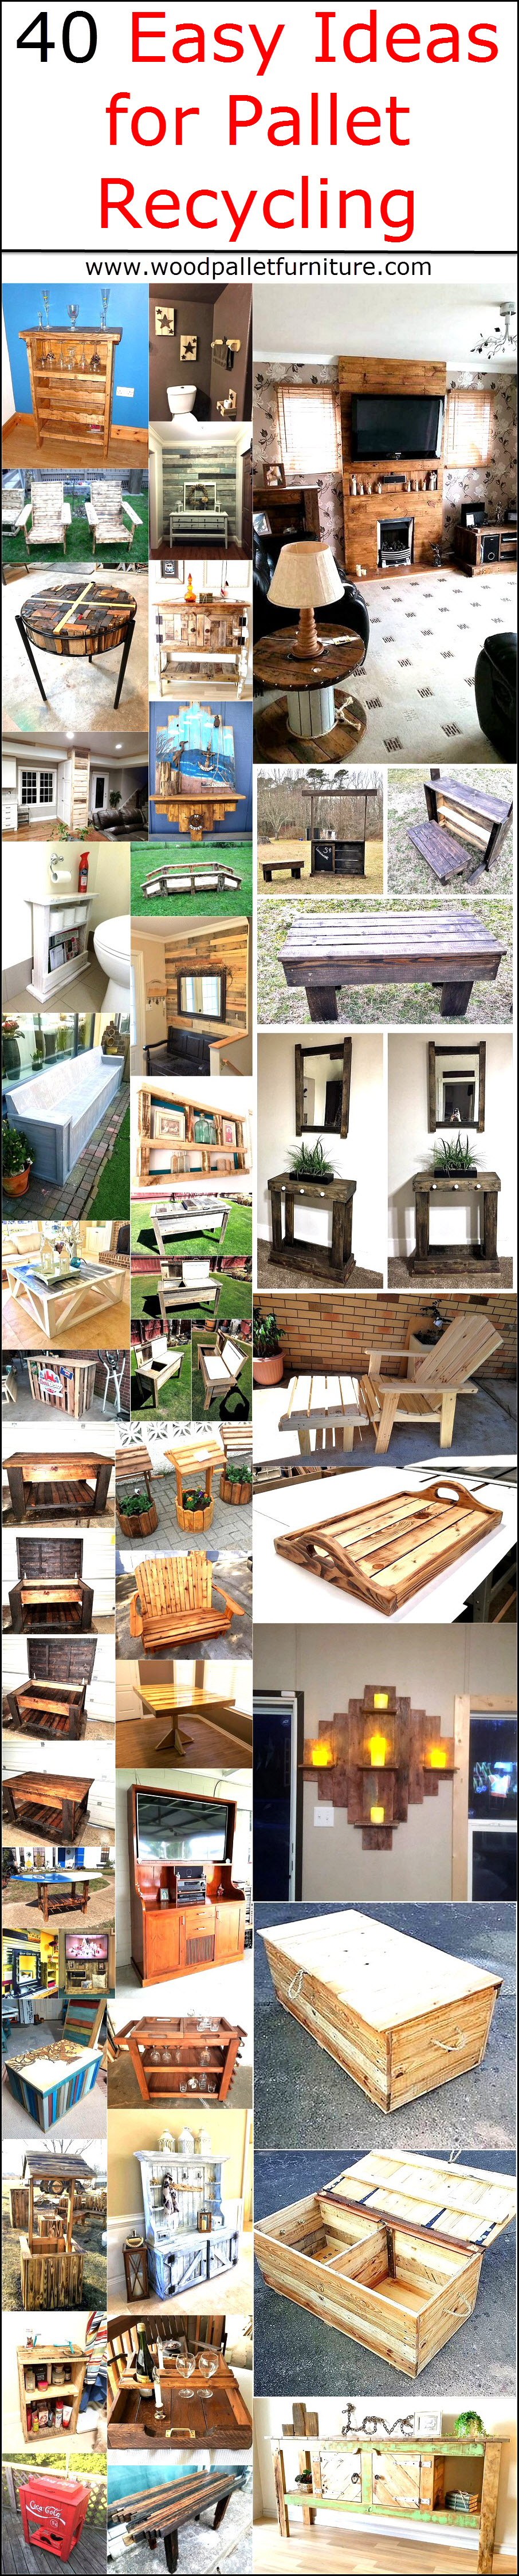 40 Easy Ideas for Pallet Recycling